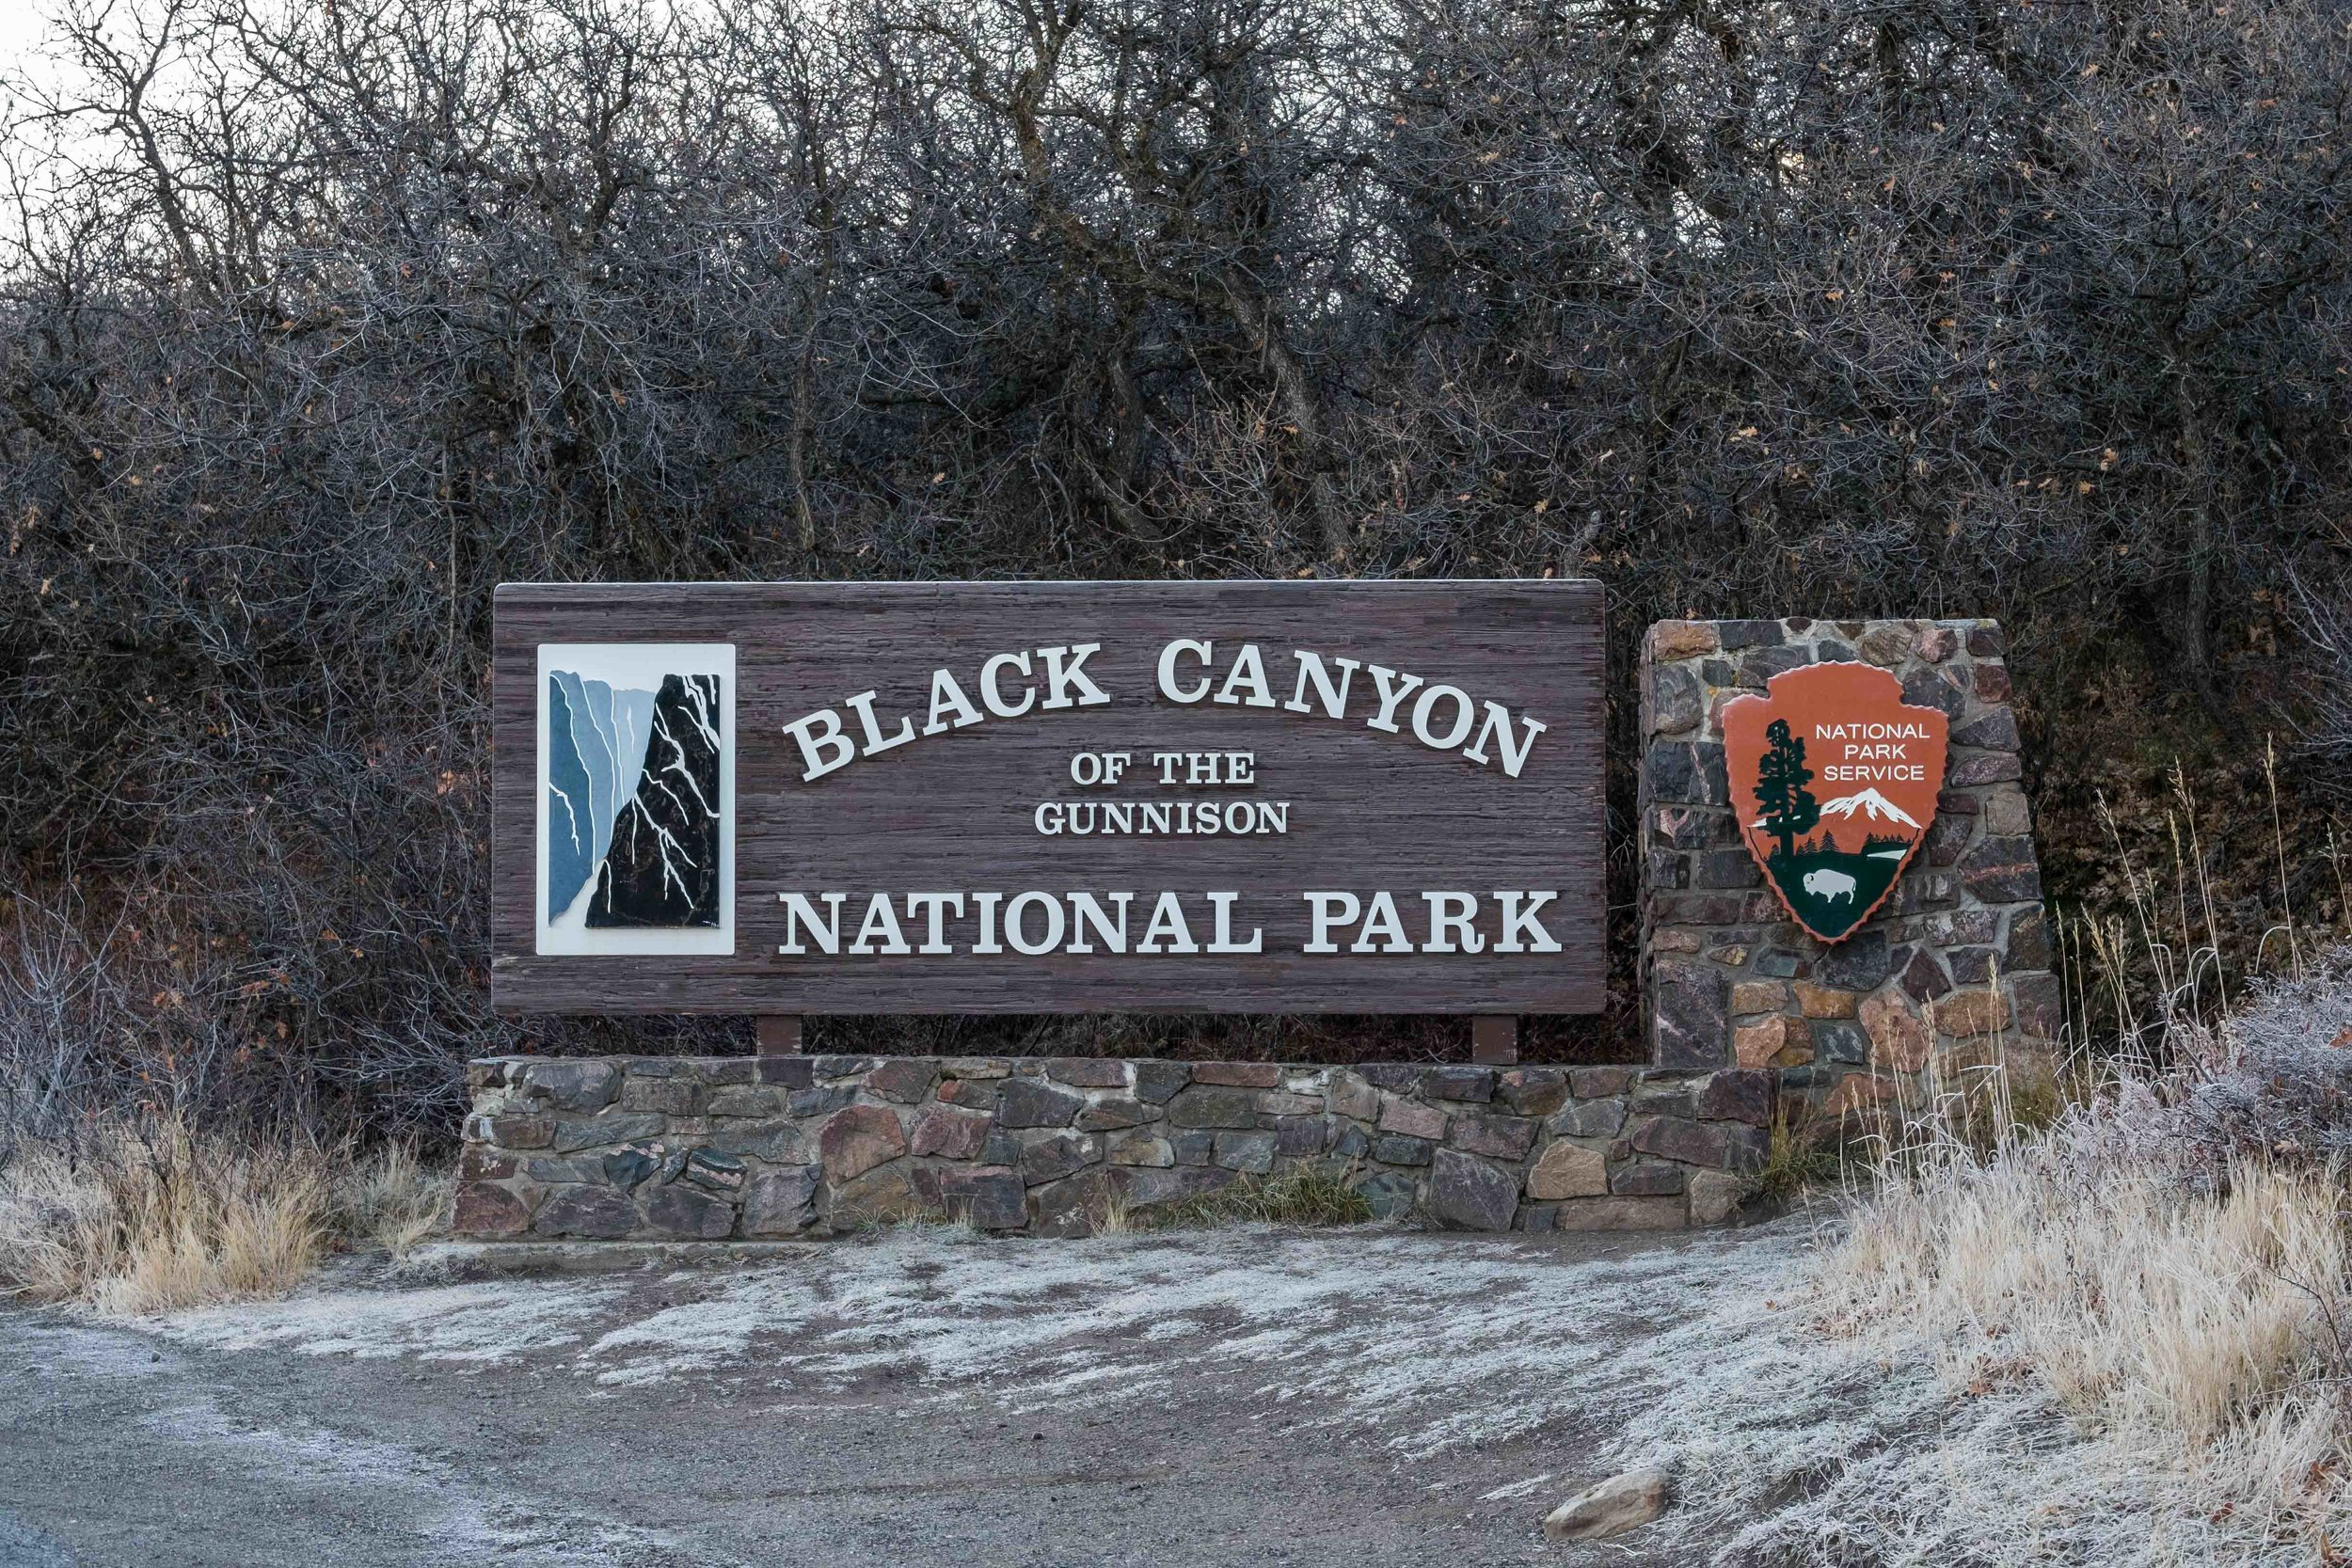 Another Park Service sign welcomed us at Black Canyon - love the design art showing the canyon!